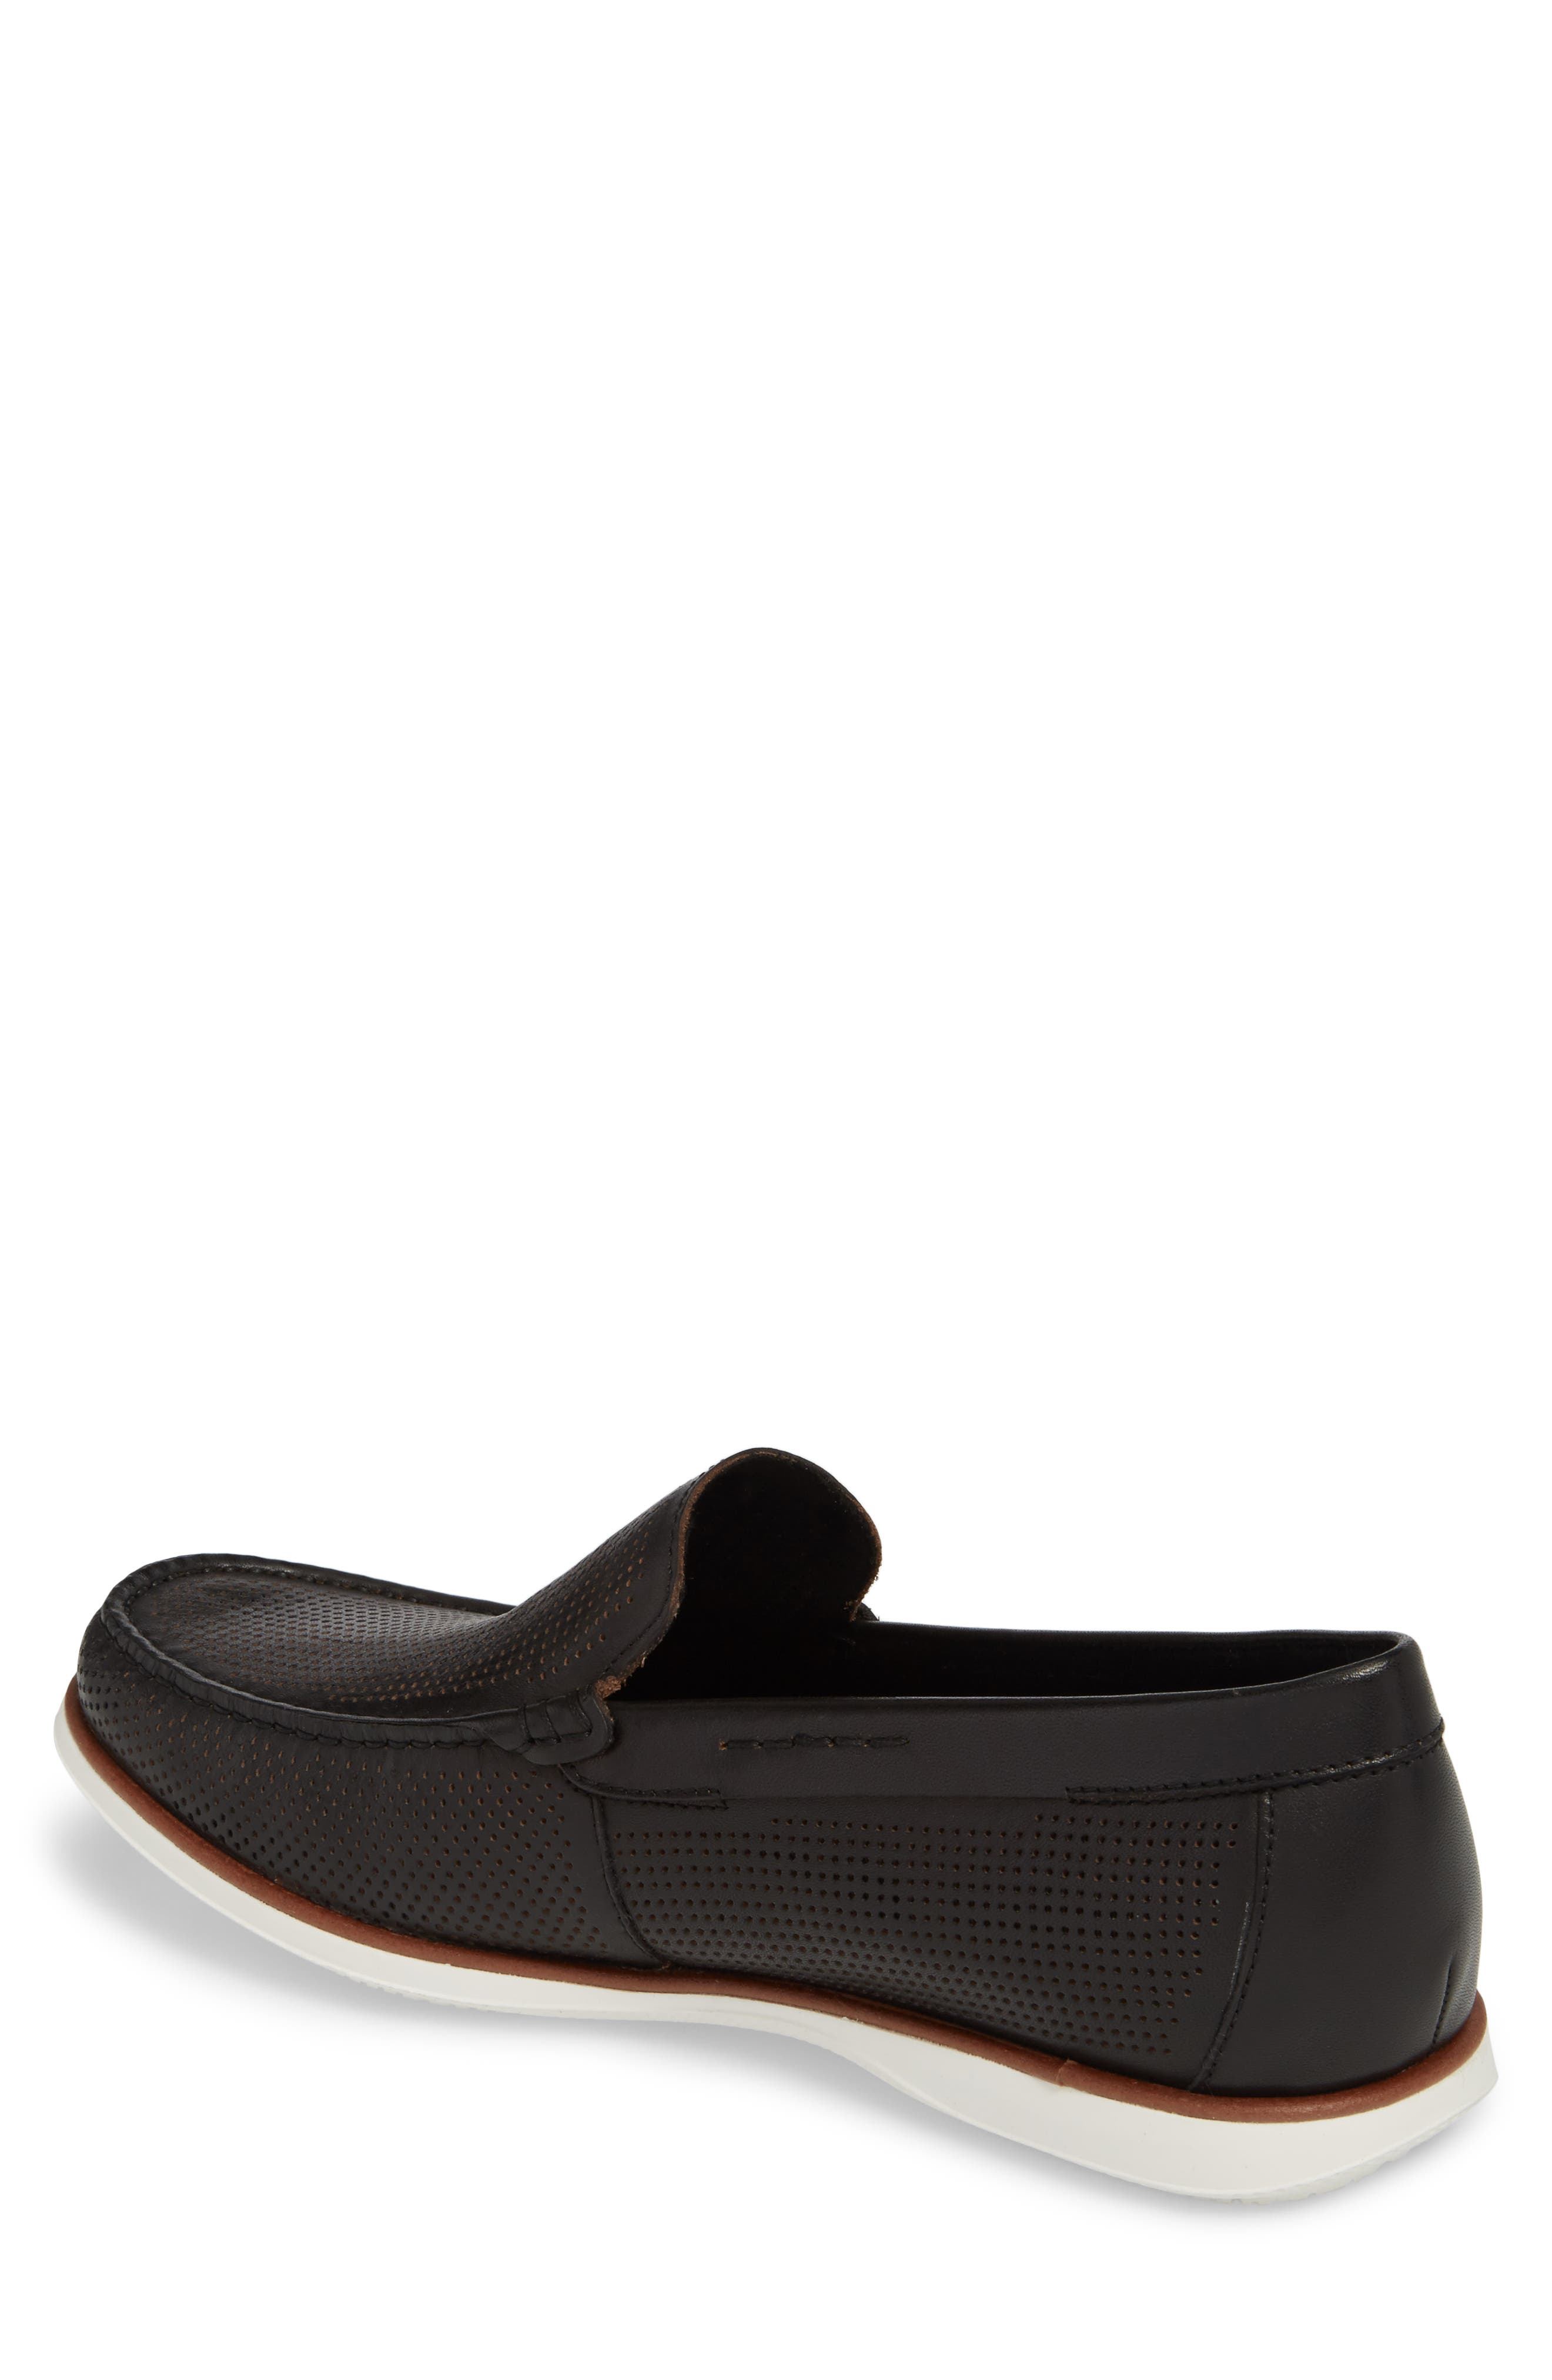 Cyrus Venetian Loafer,                             Alternate thumbnail 4, color,